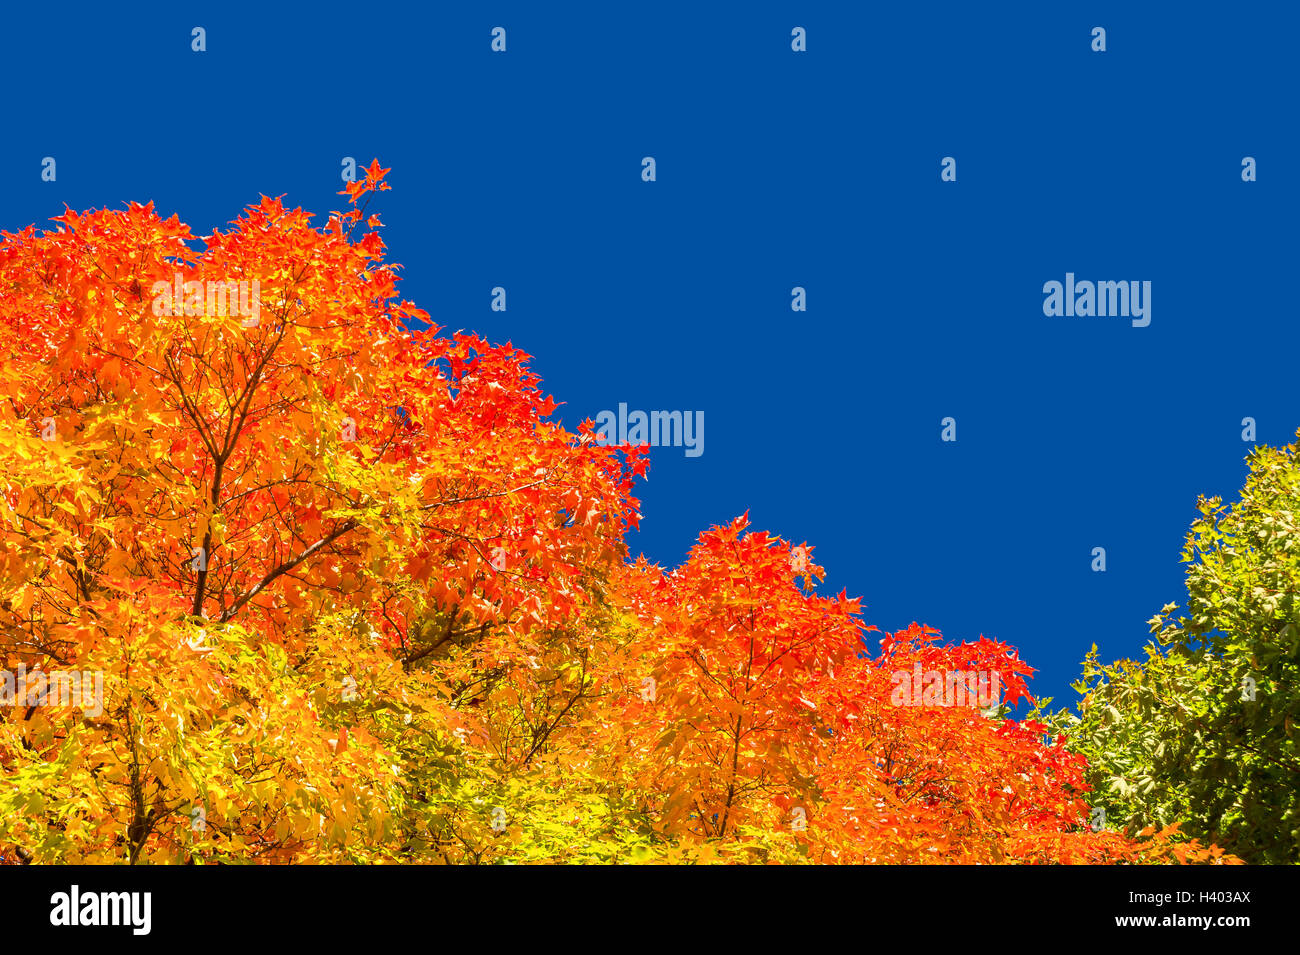 Autumn maple trees with red leaves against pure blue sky in Montreal, Quebec, Canada - Stock Image